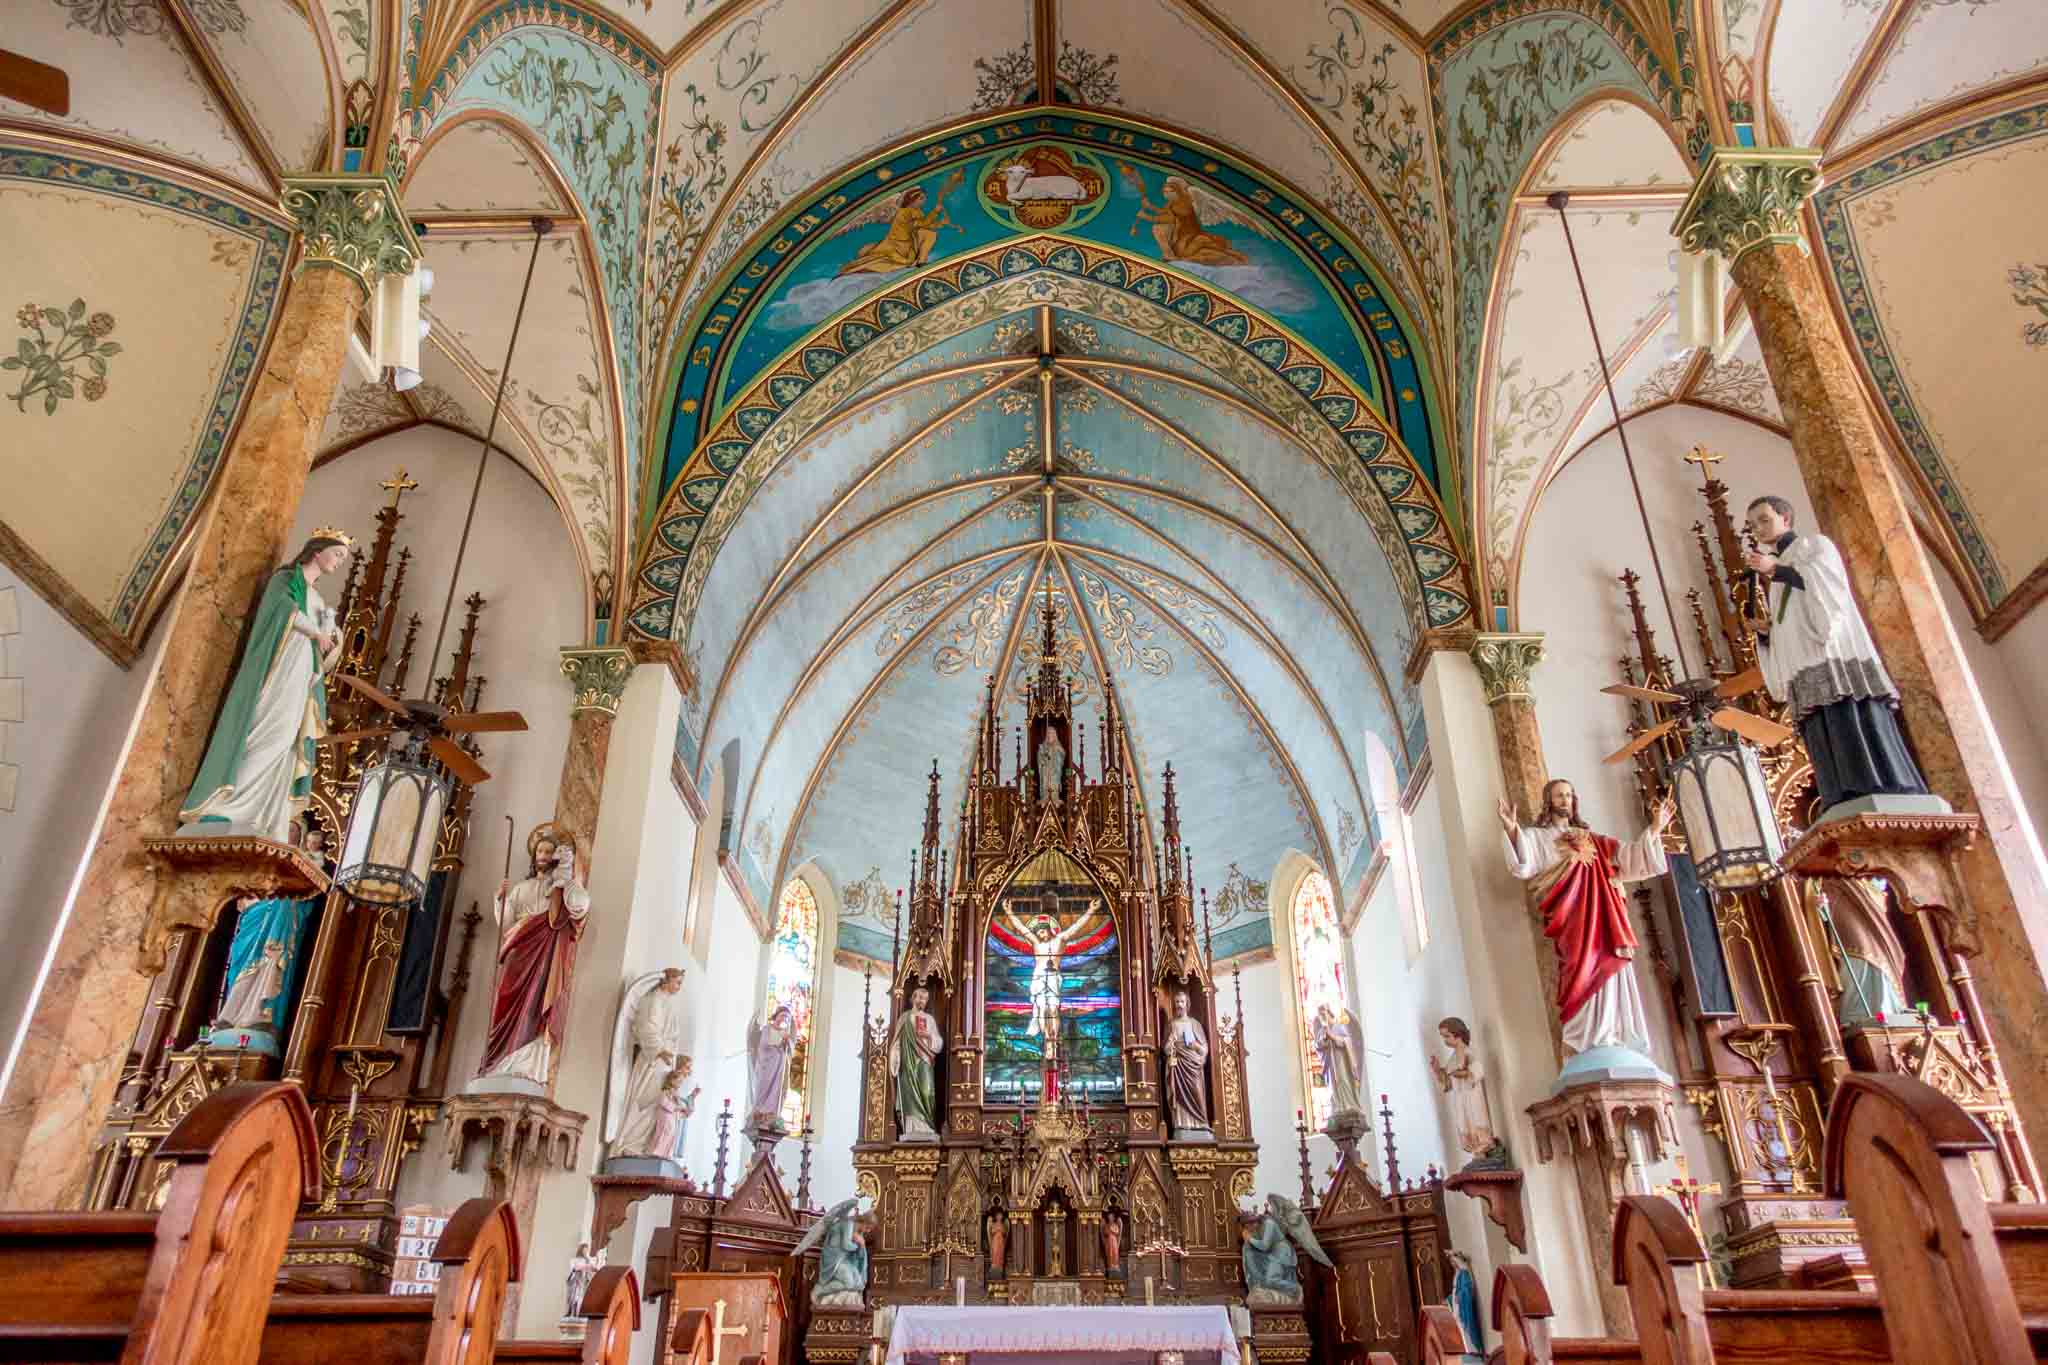 Statues and decorative ceiling in a church sanctuary